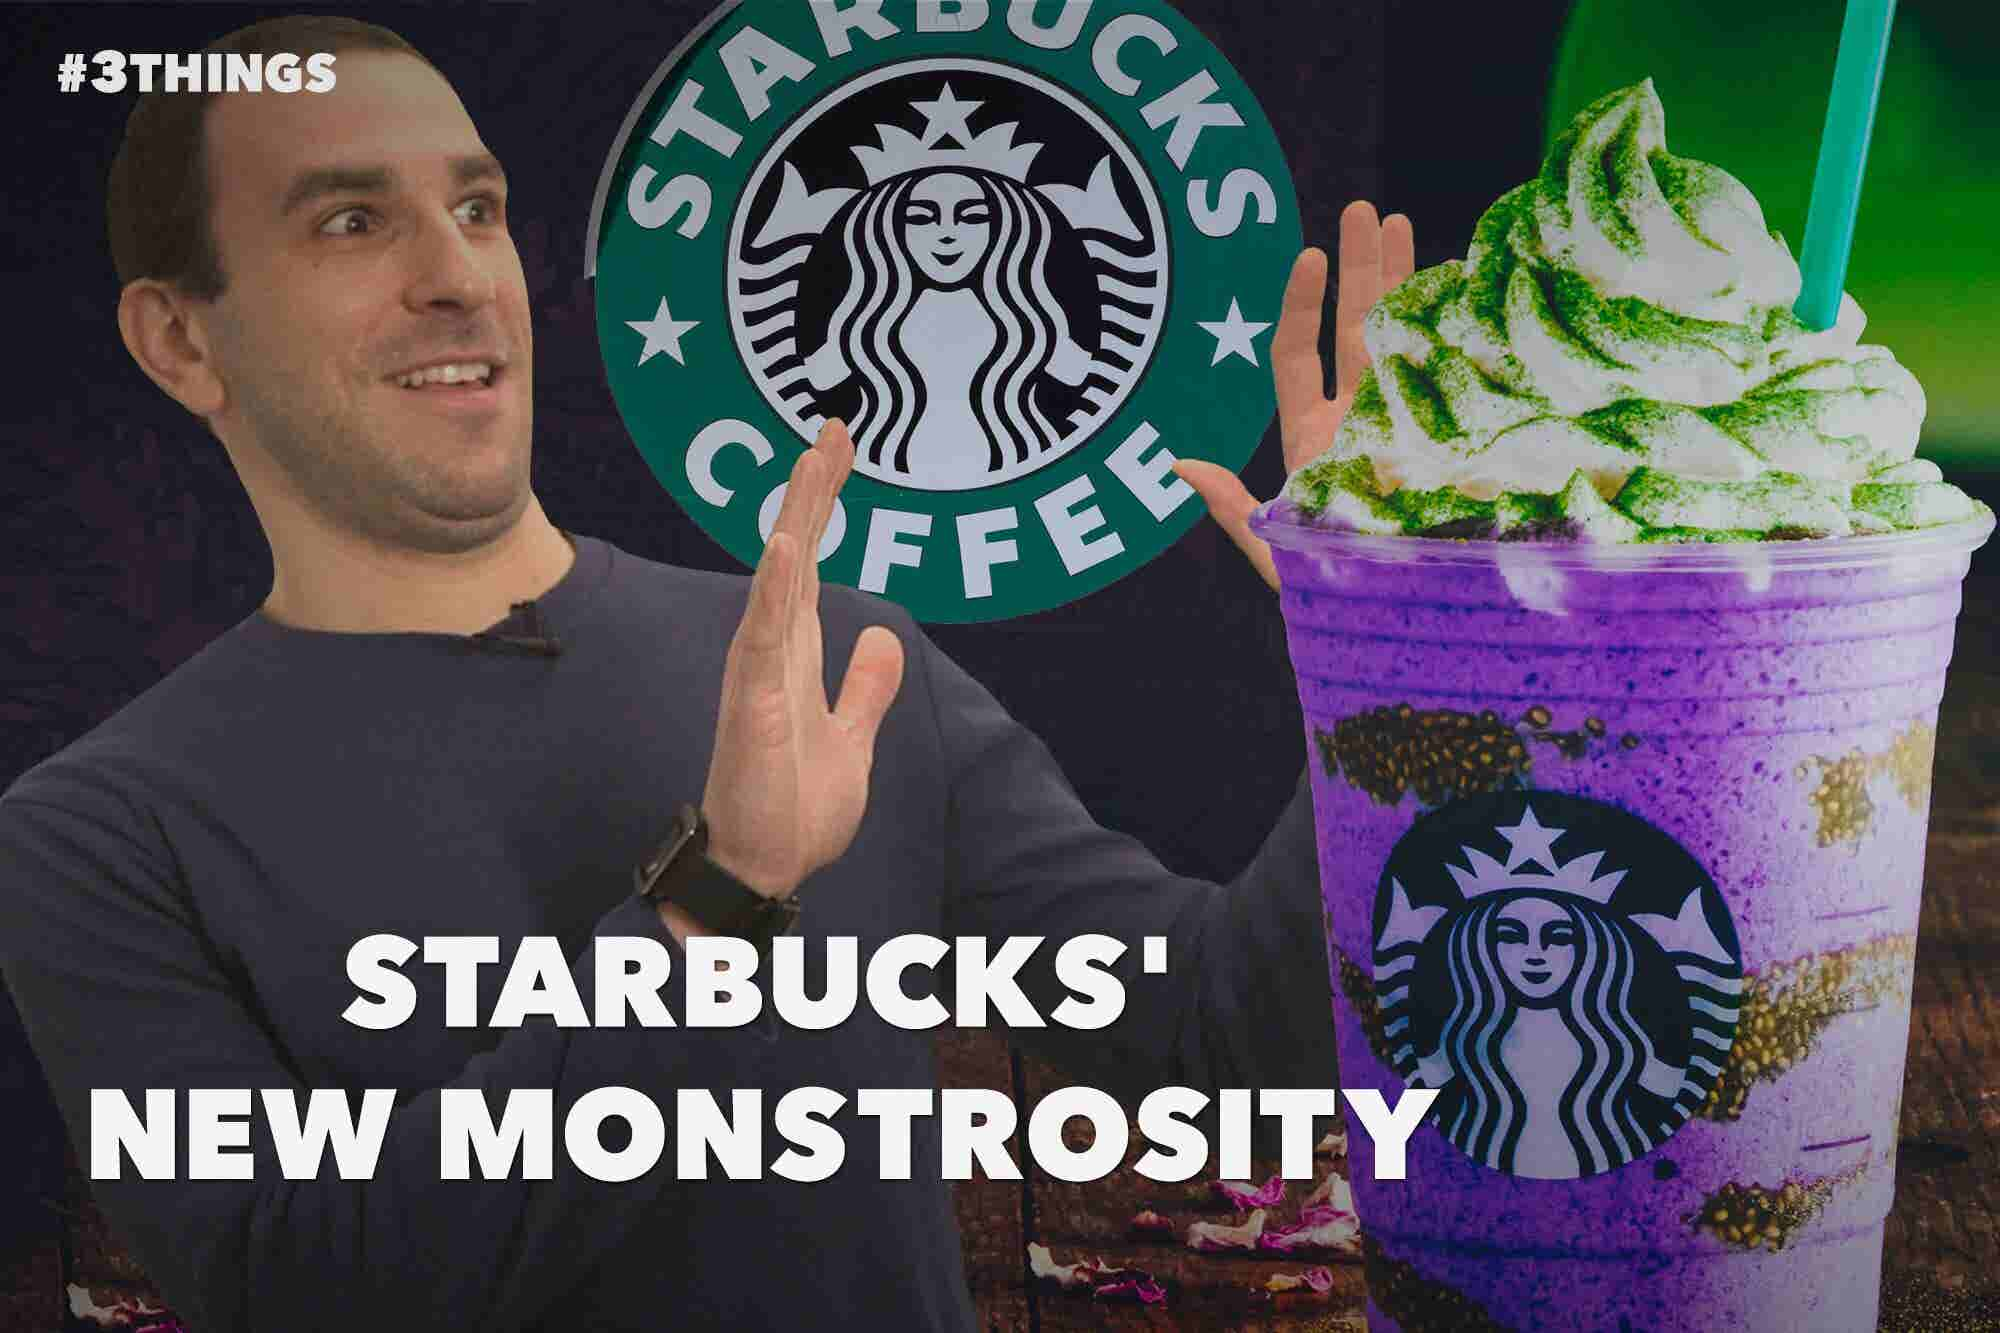 60-Second Video: Starbucks Unleashes a New Monstrosity!